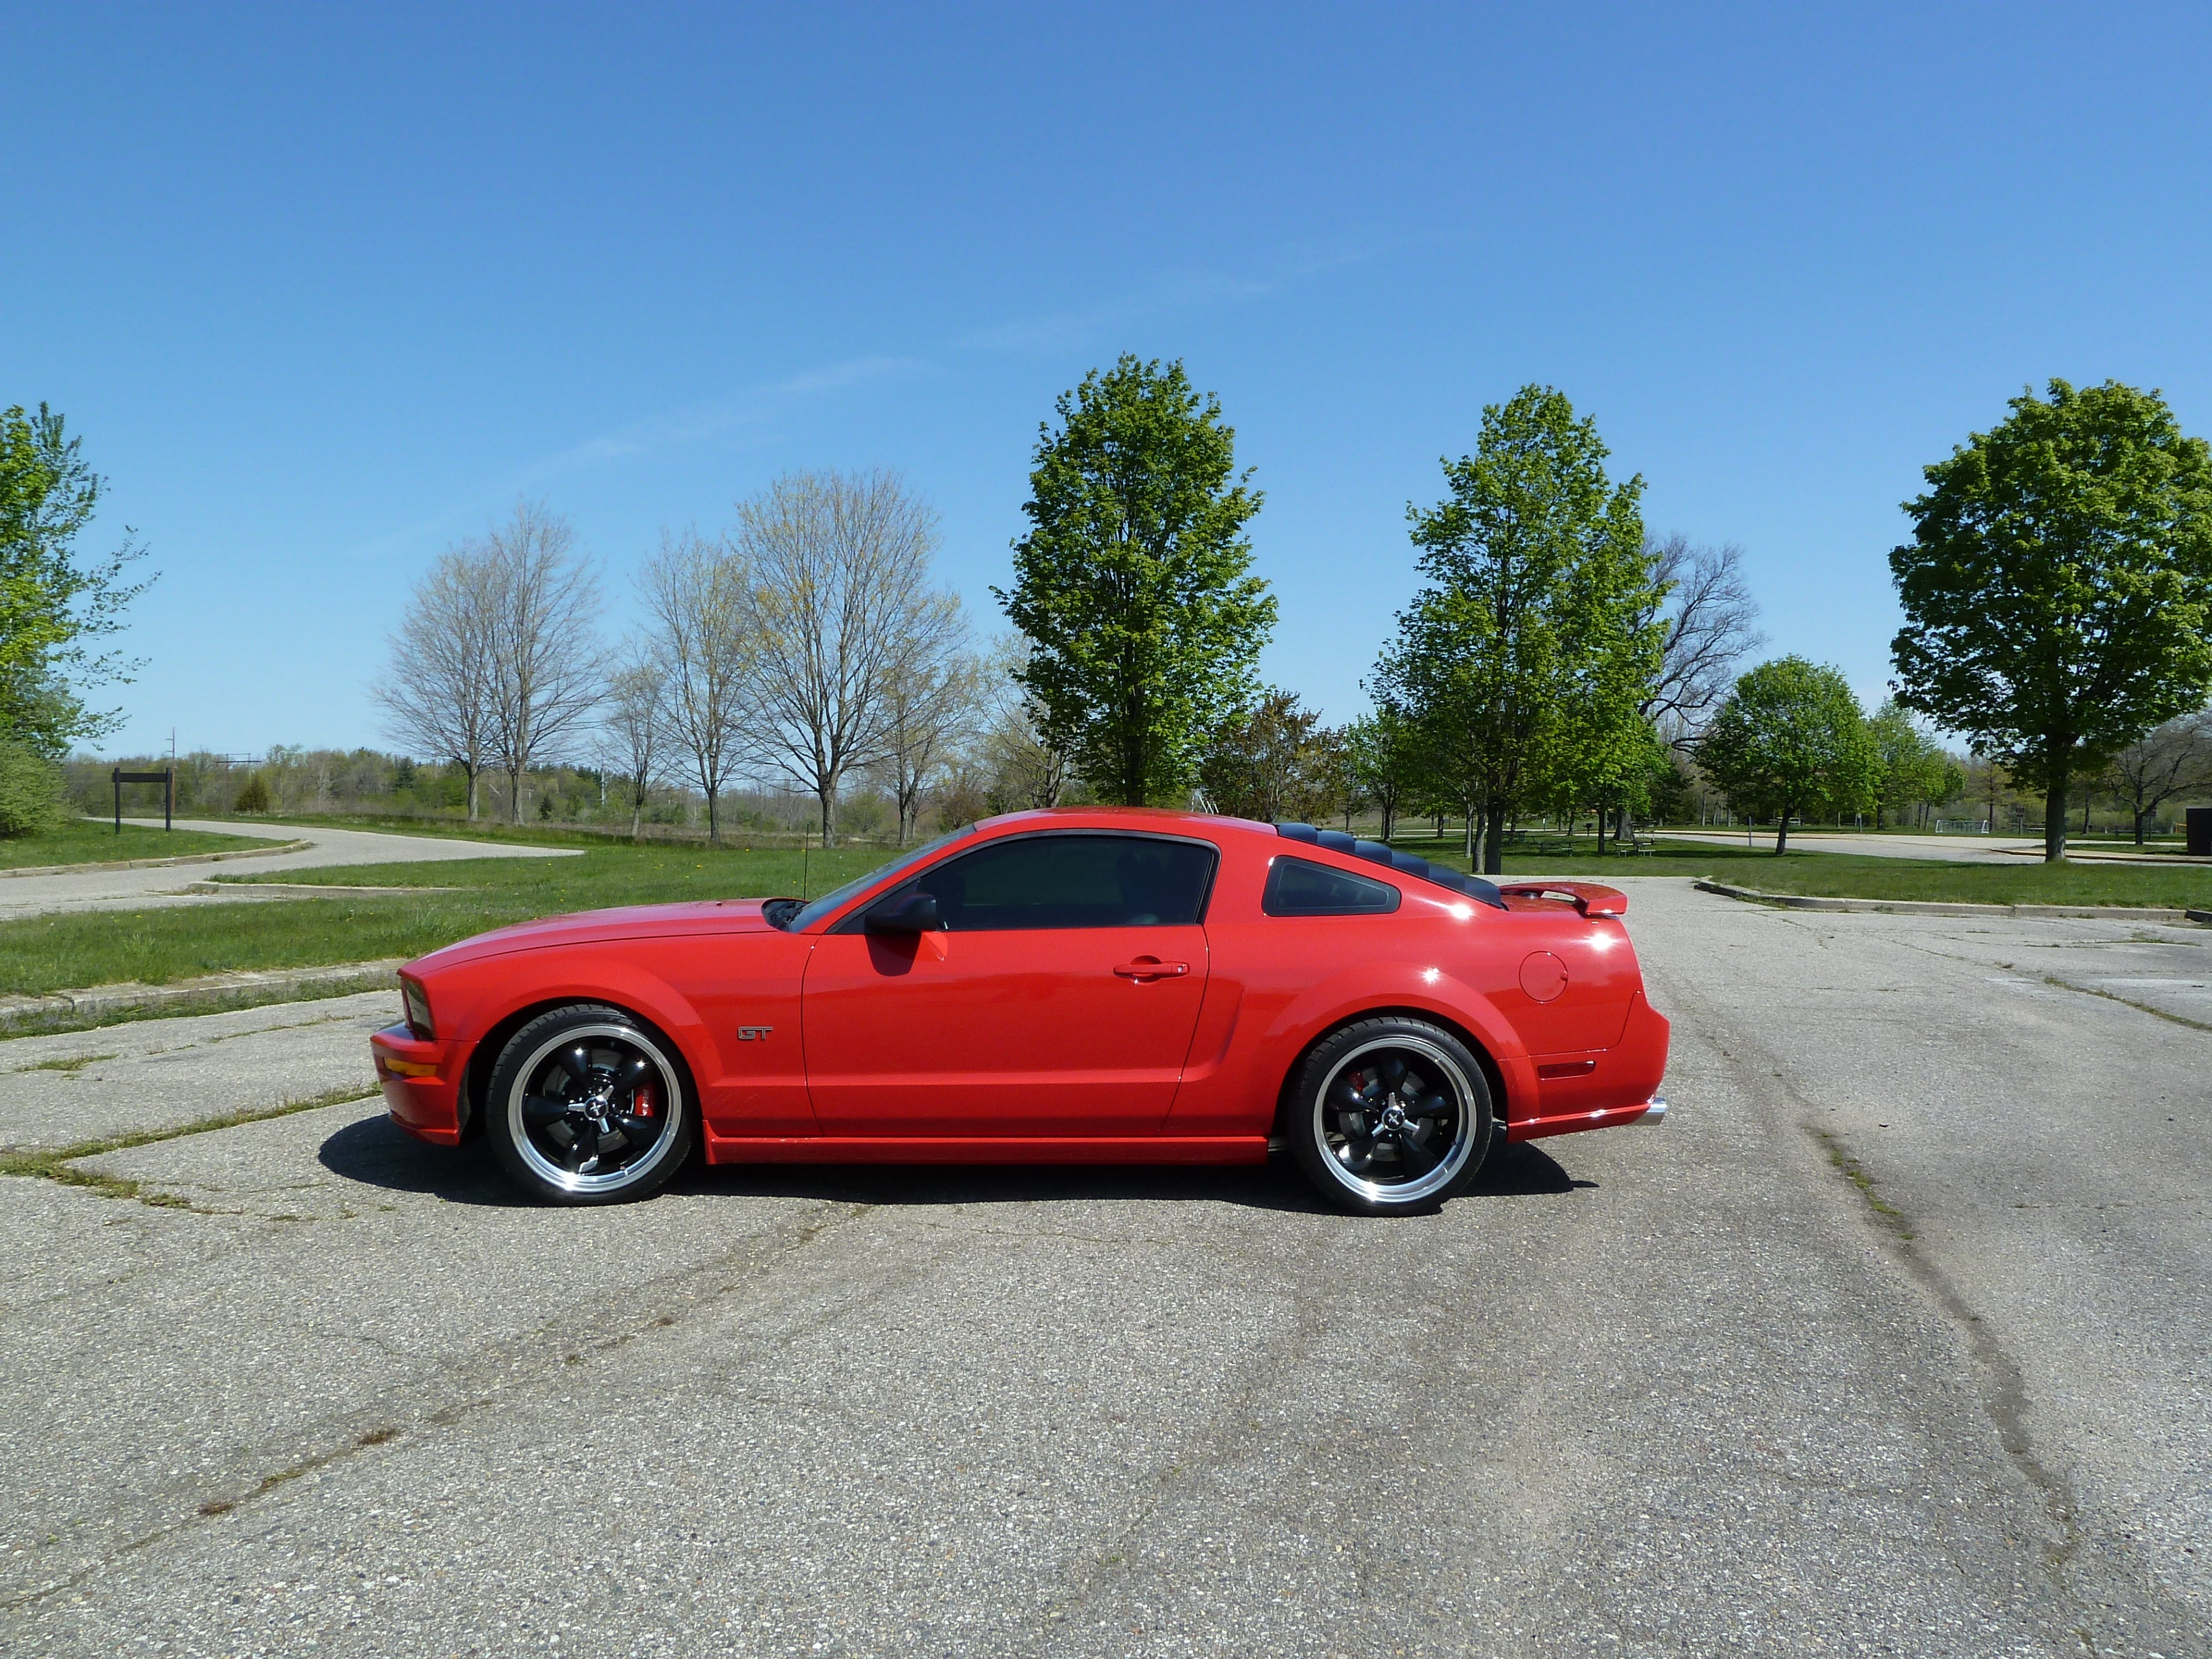 Click image for larger version  Name:2007 Mustang P1000219.jpg Views:14660 Size:2.05 MB ID:83216